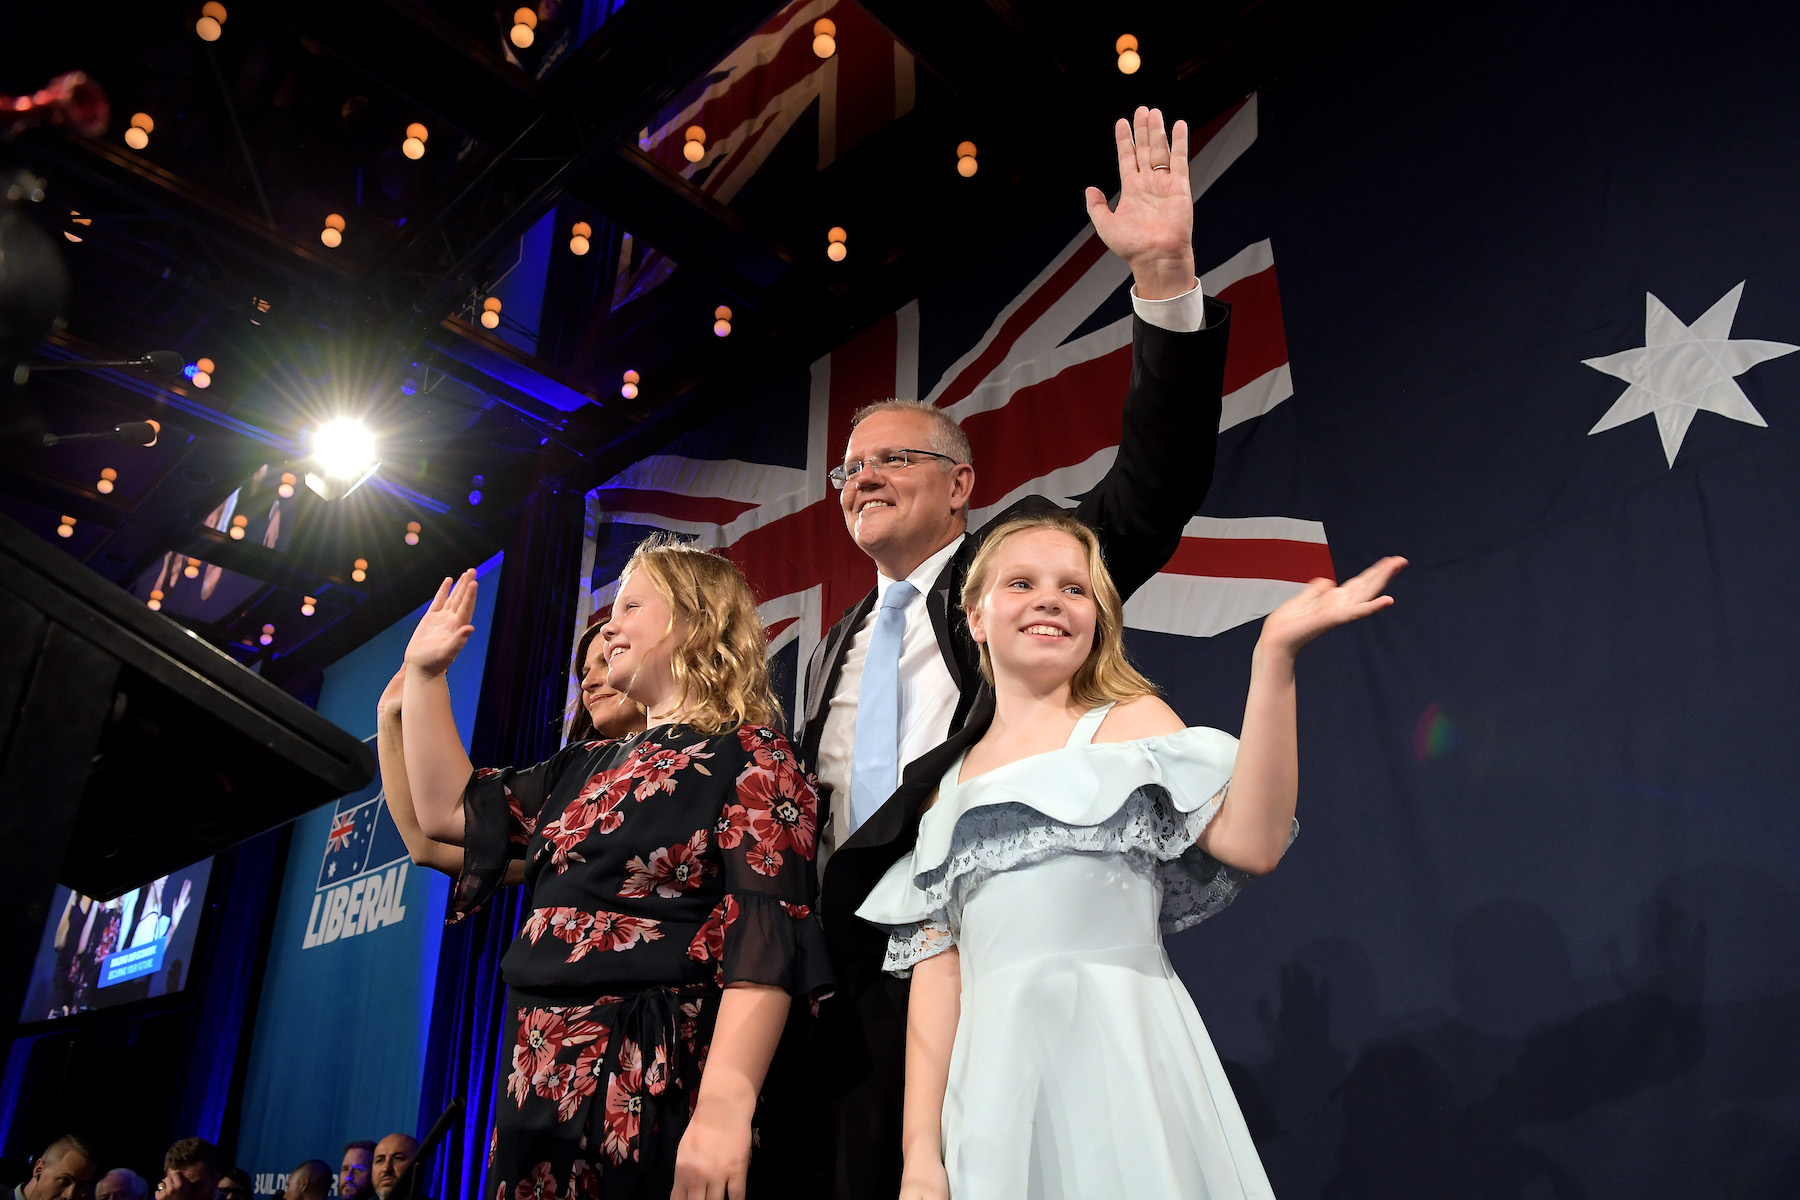 Scott Morrison Claims Victory In 2019 Australian Federal Election